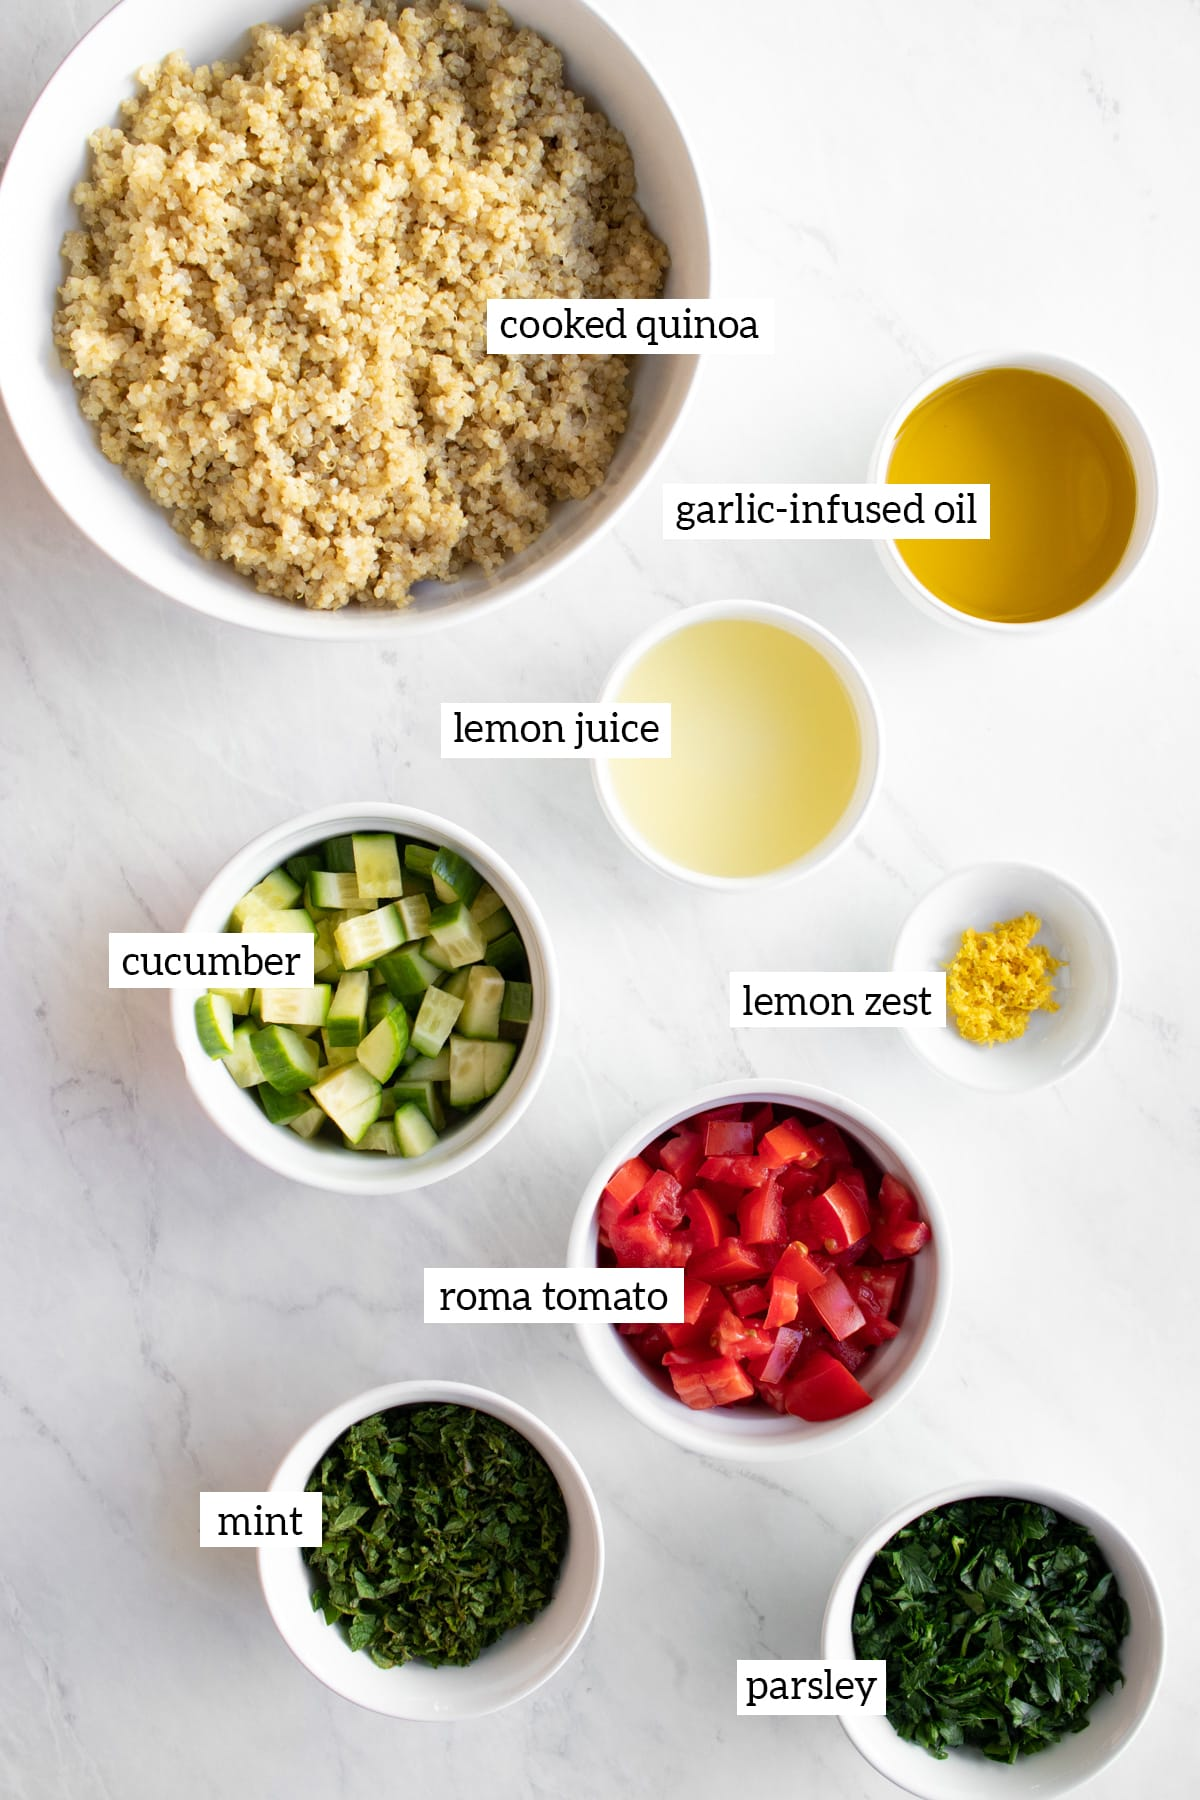 Ingredients needed for low FODMAP quinoa tabbouleh measured out into white bowls